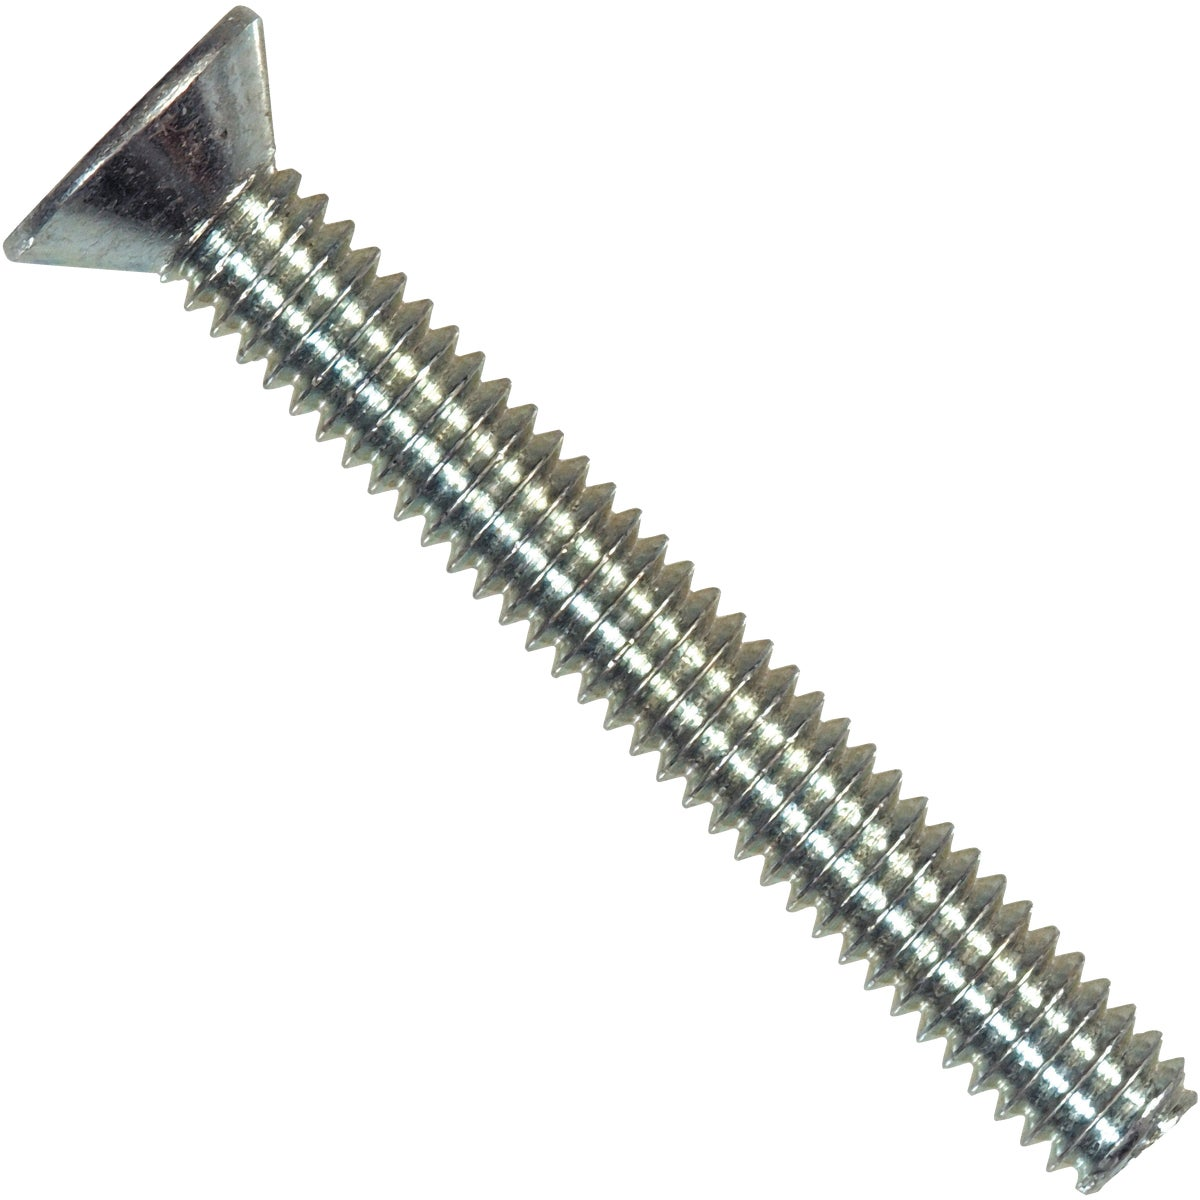 6-32X1-1/4 PH MACH SCREW - 101039 by Hillman Fastener